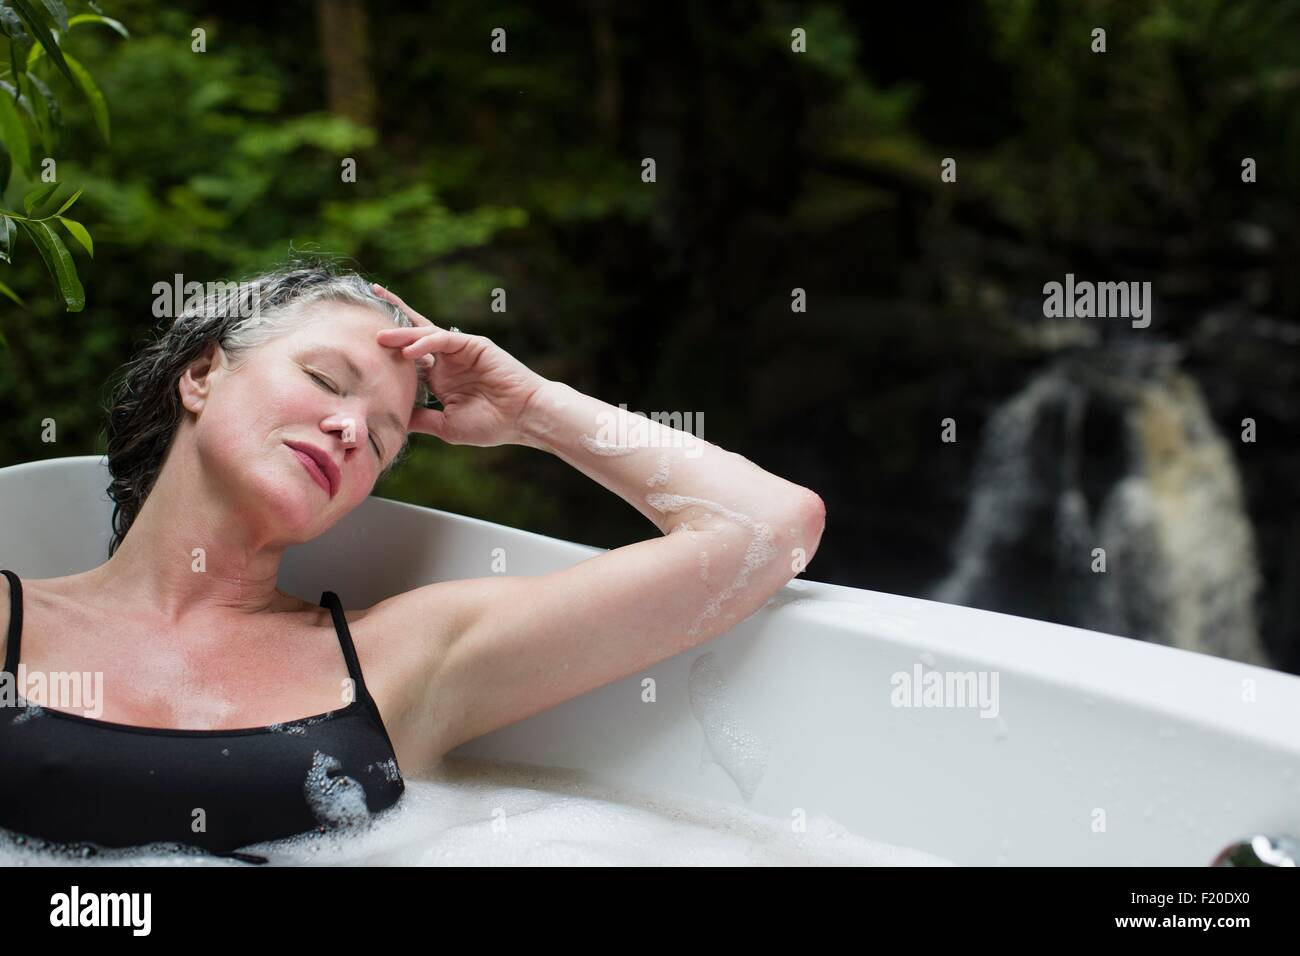 Mature woman with eyes closed in bubble bath in front of waterfall at eco retreat - Stock Image